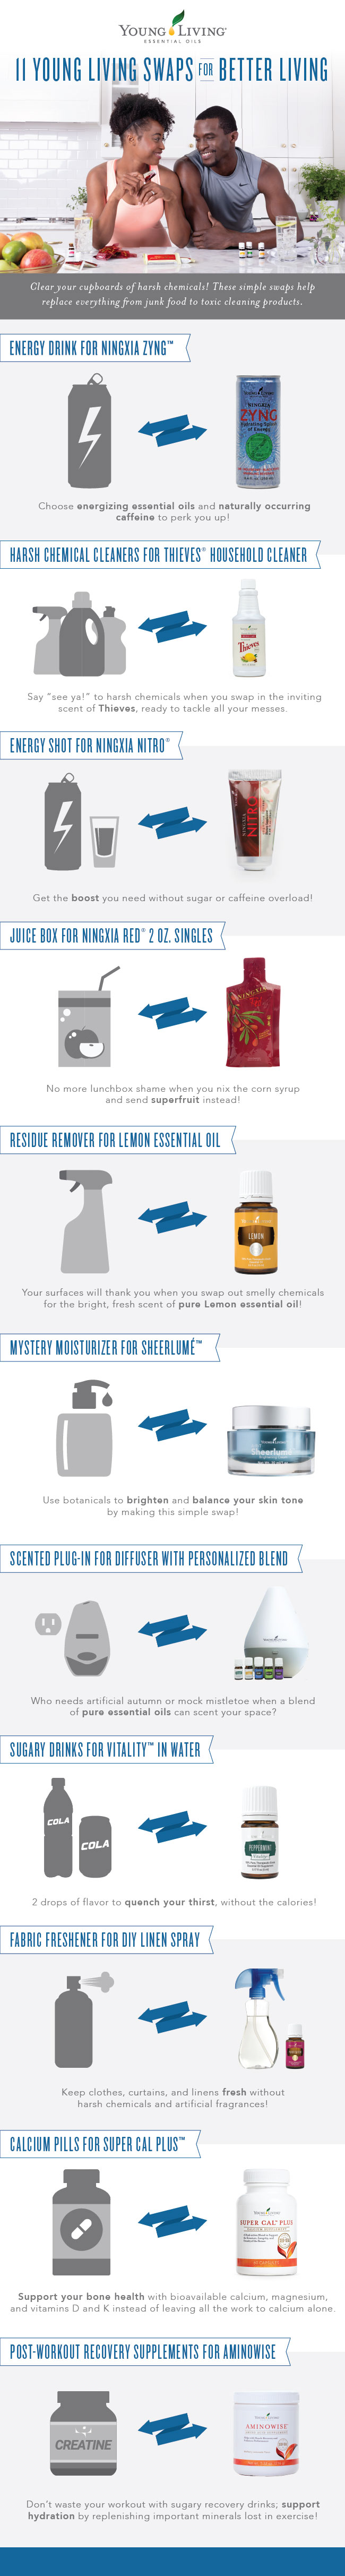 15 Young Living swaps for better living Infographic